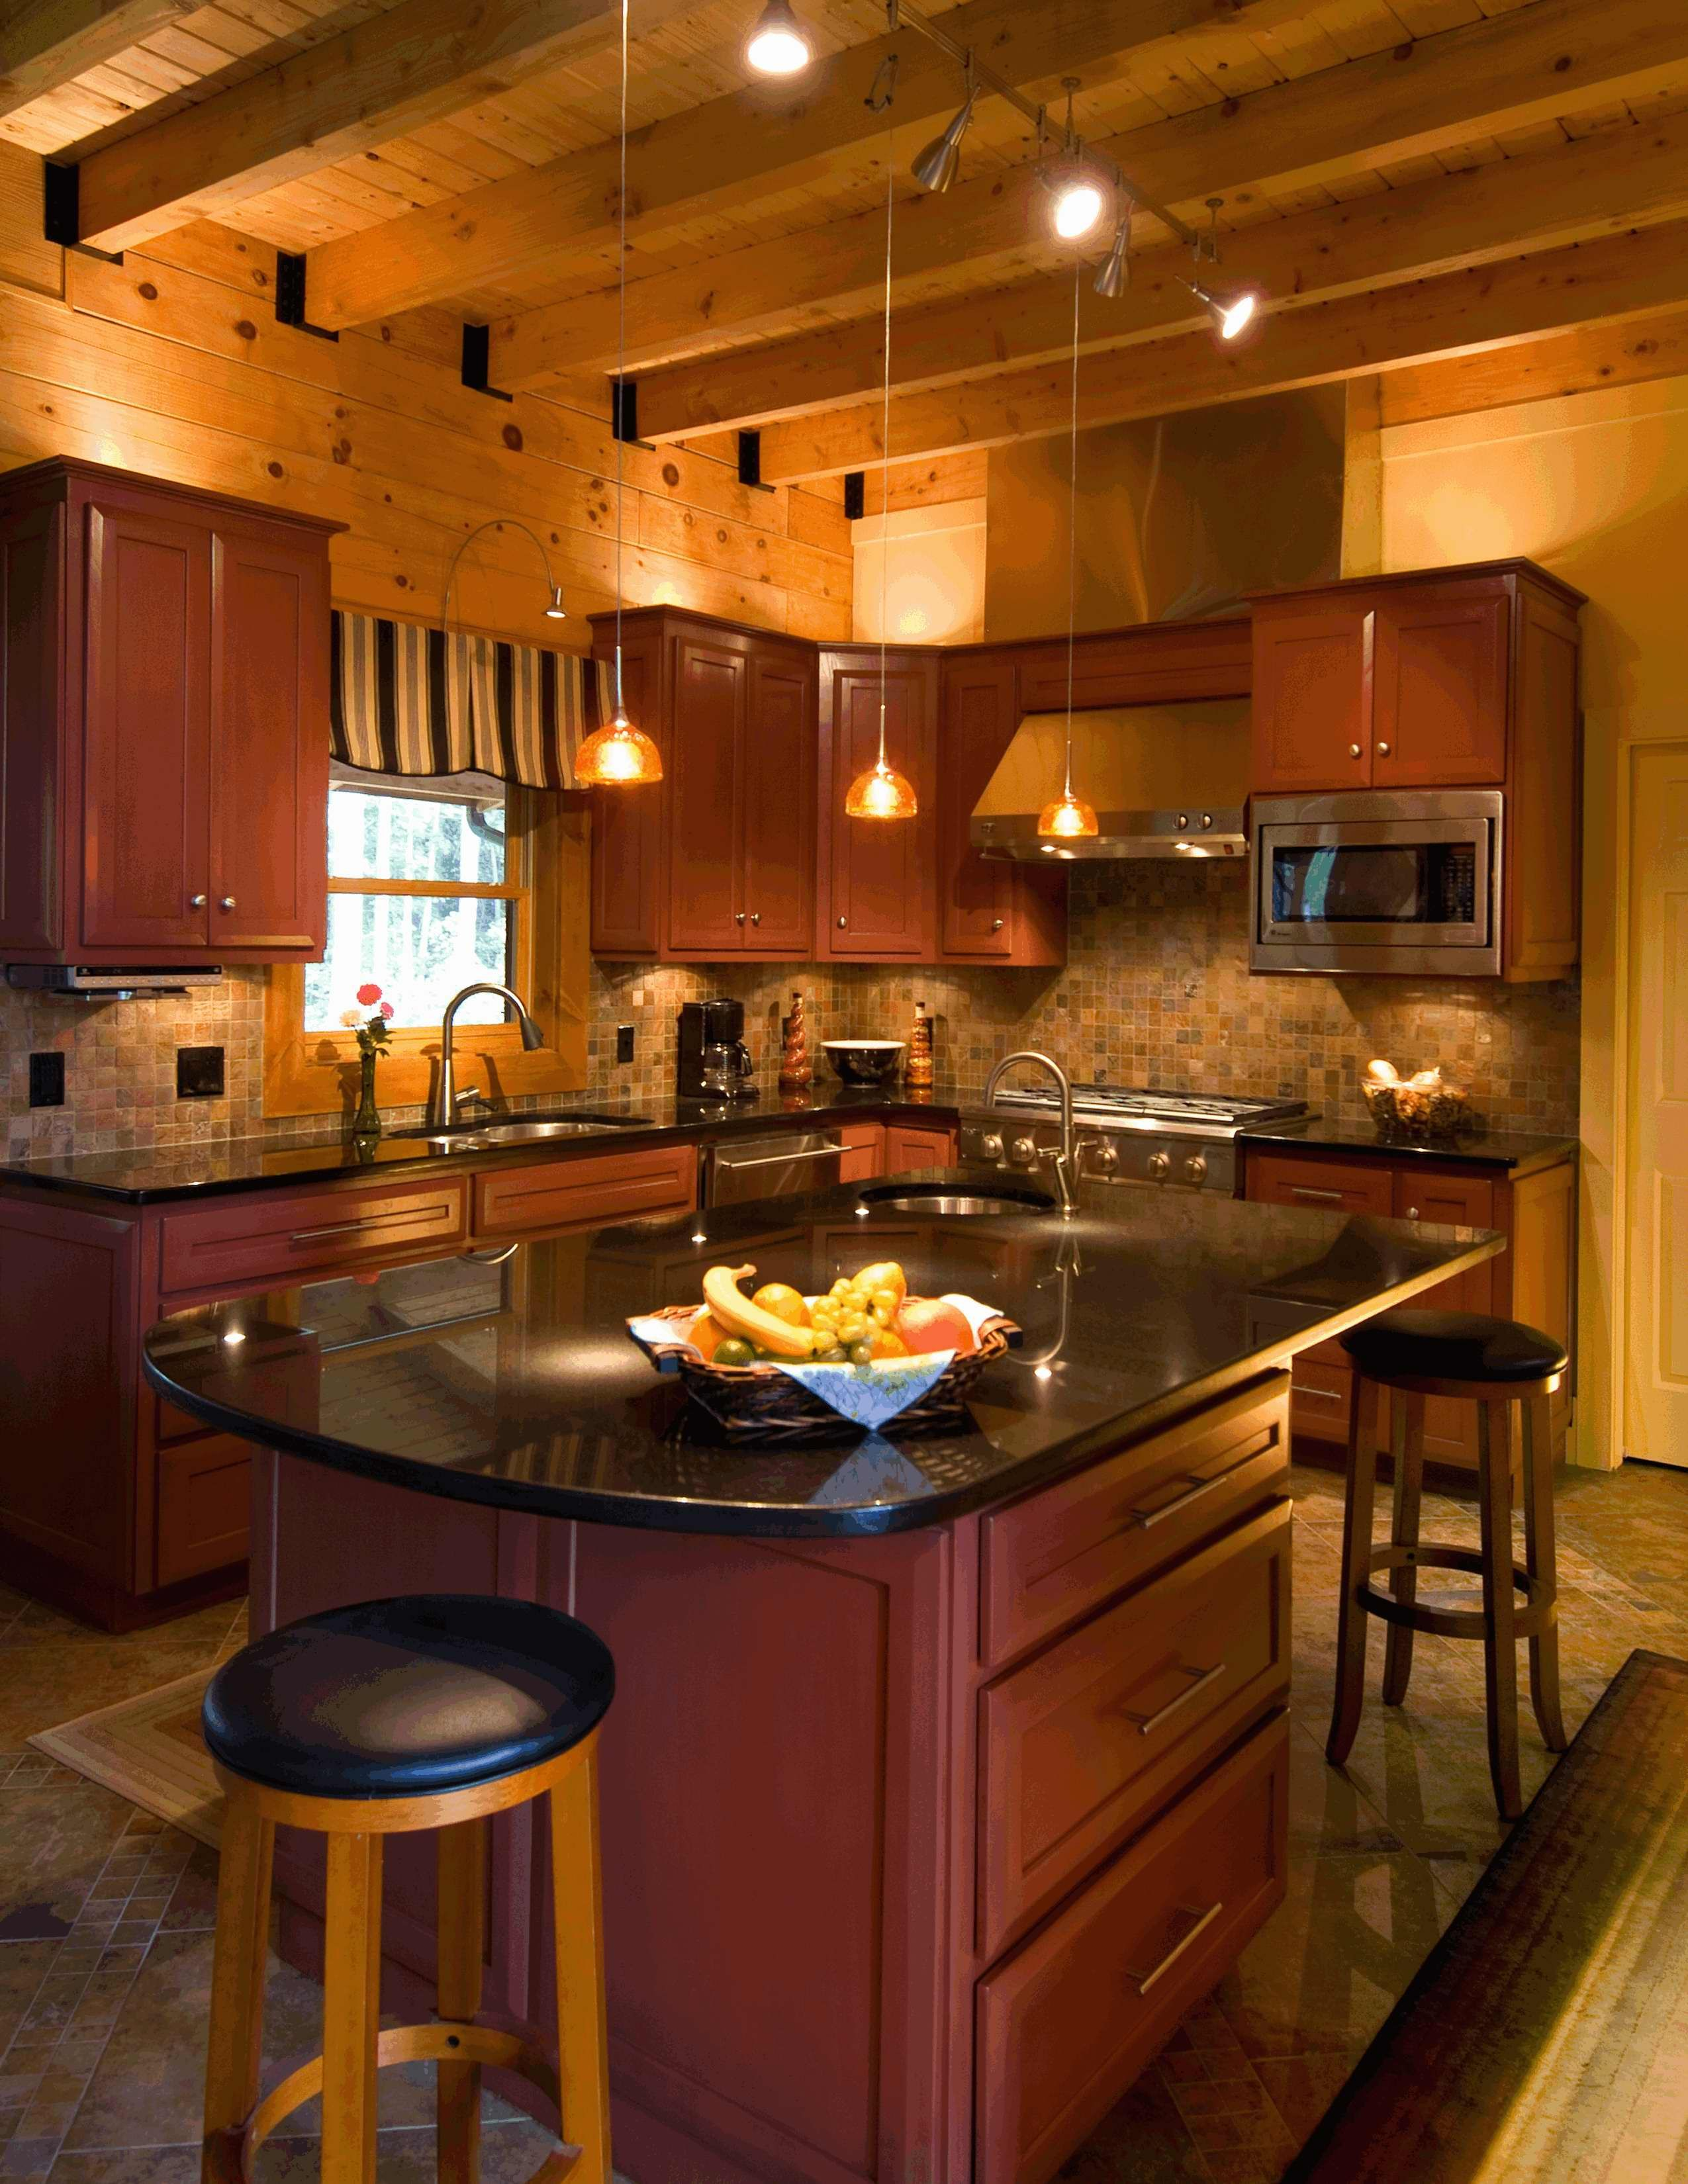 Timber Frame Beam Ceiling, Custom Cherry Cabinets And